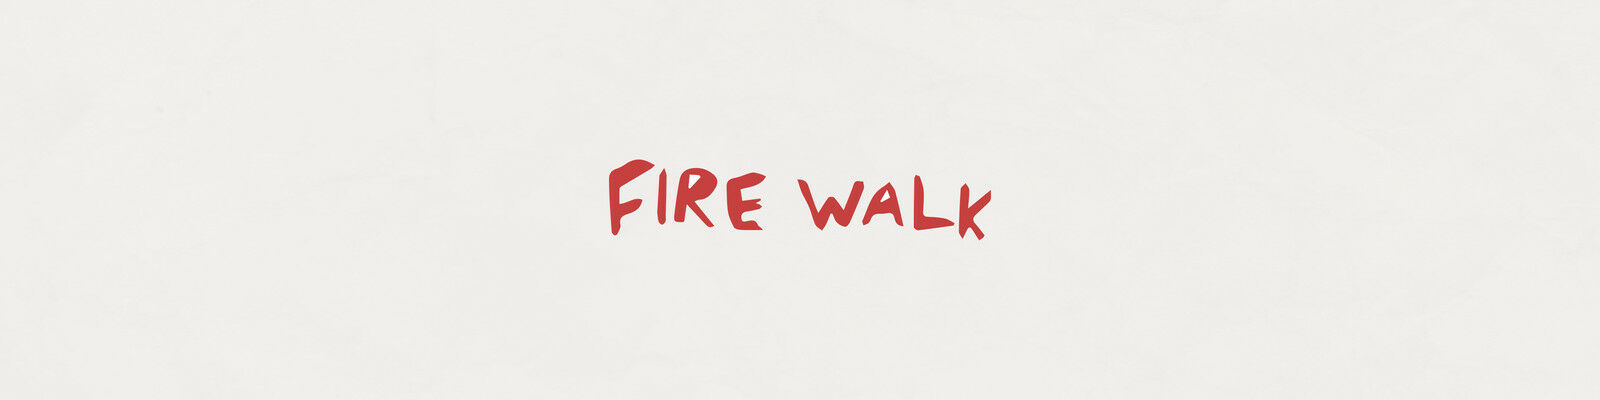 FIRE WALK ART